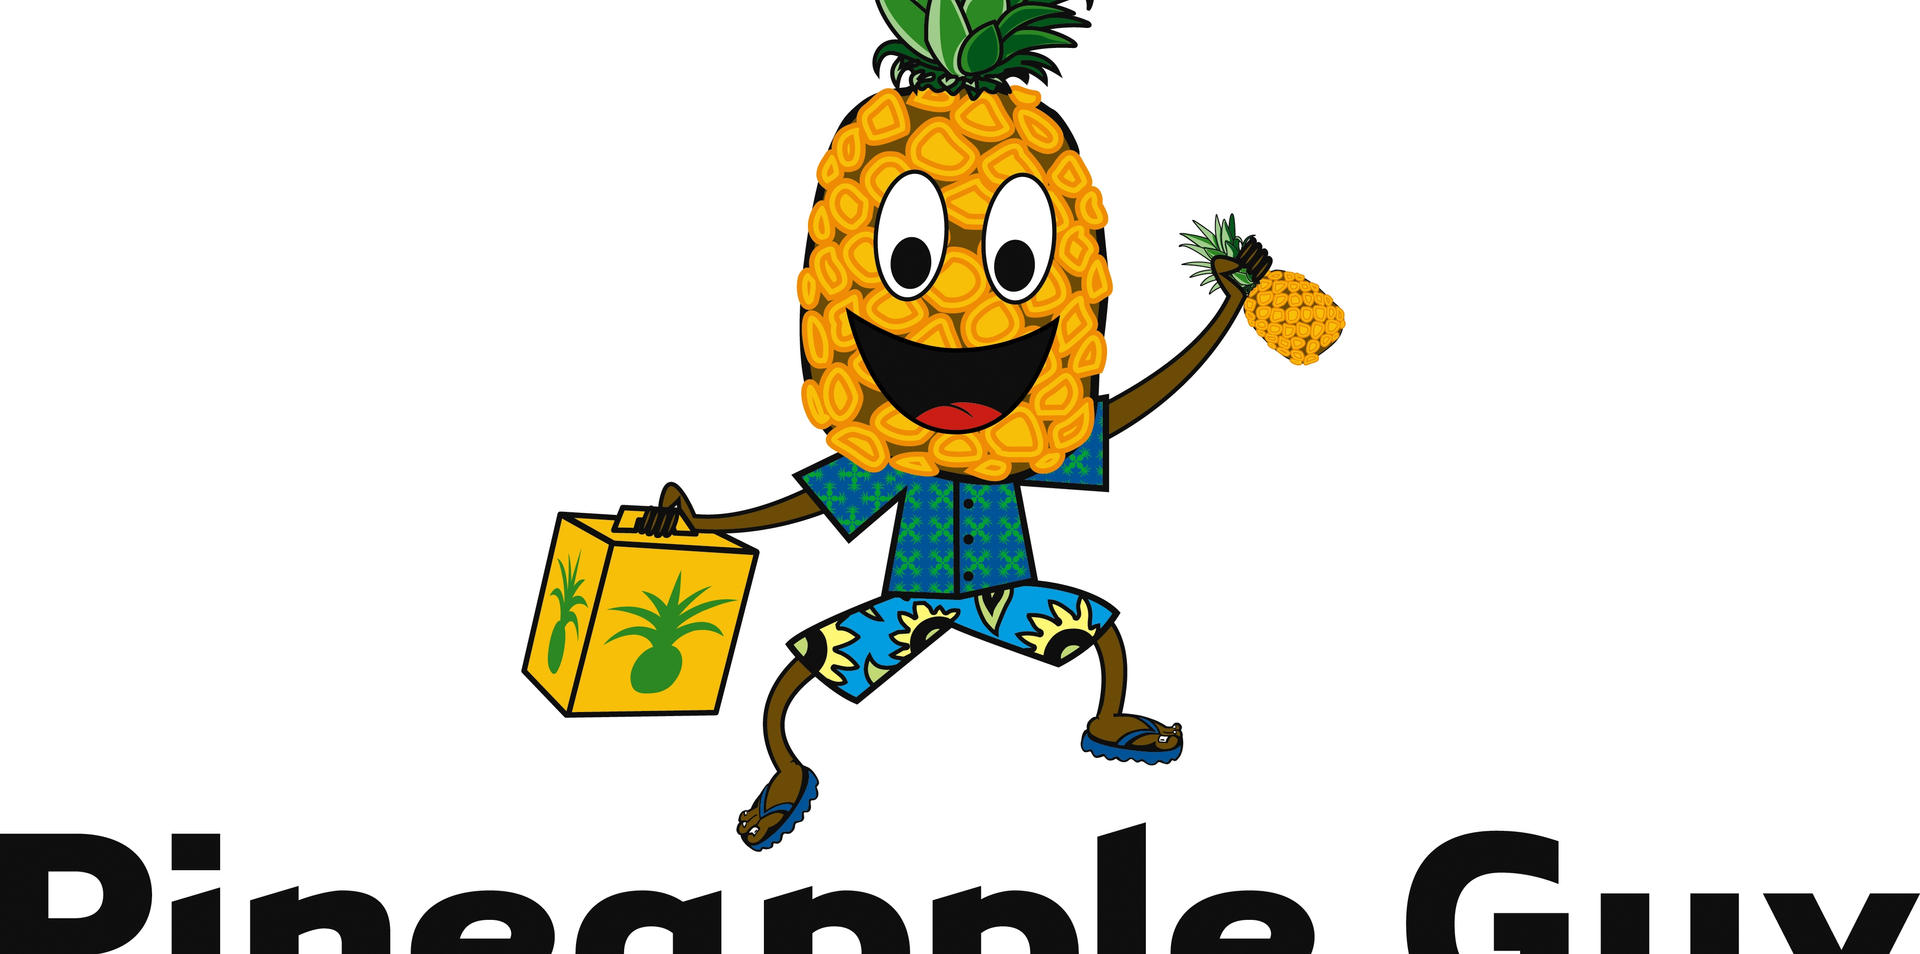 The Pineapple Guy